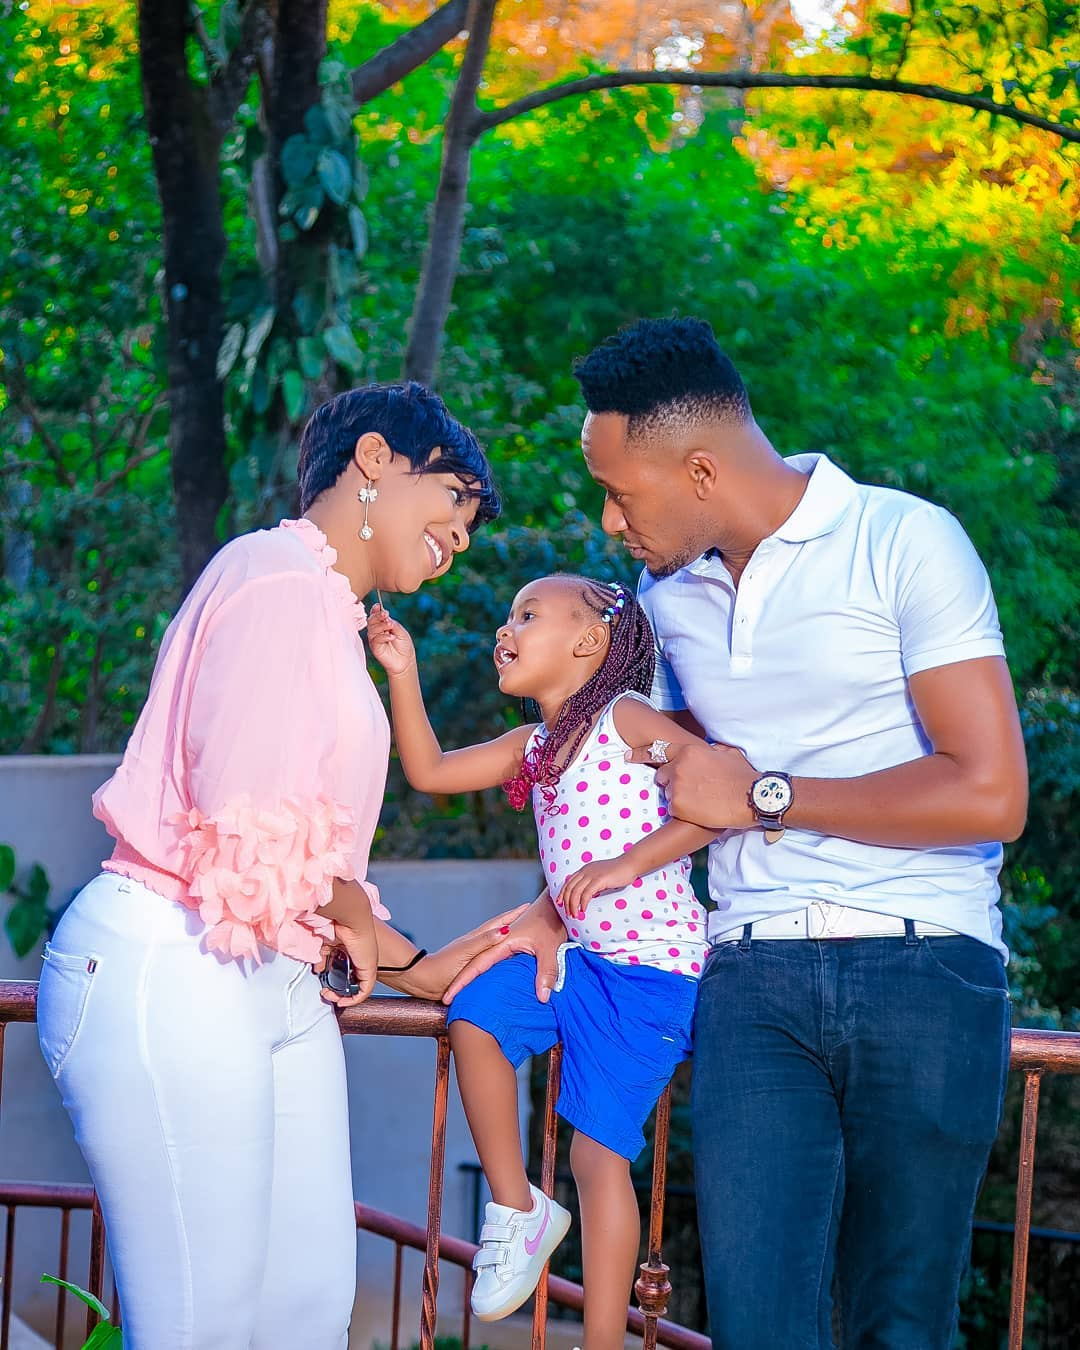 59498031 133894527707413 4191907195379670994 n - 'I can never deny my blood! DJ Mo speaks about Pierra Makena's daughter